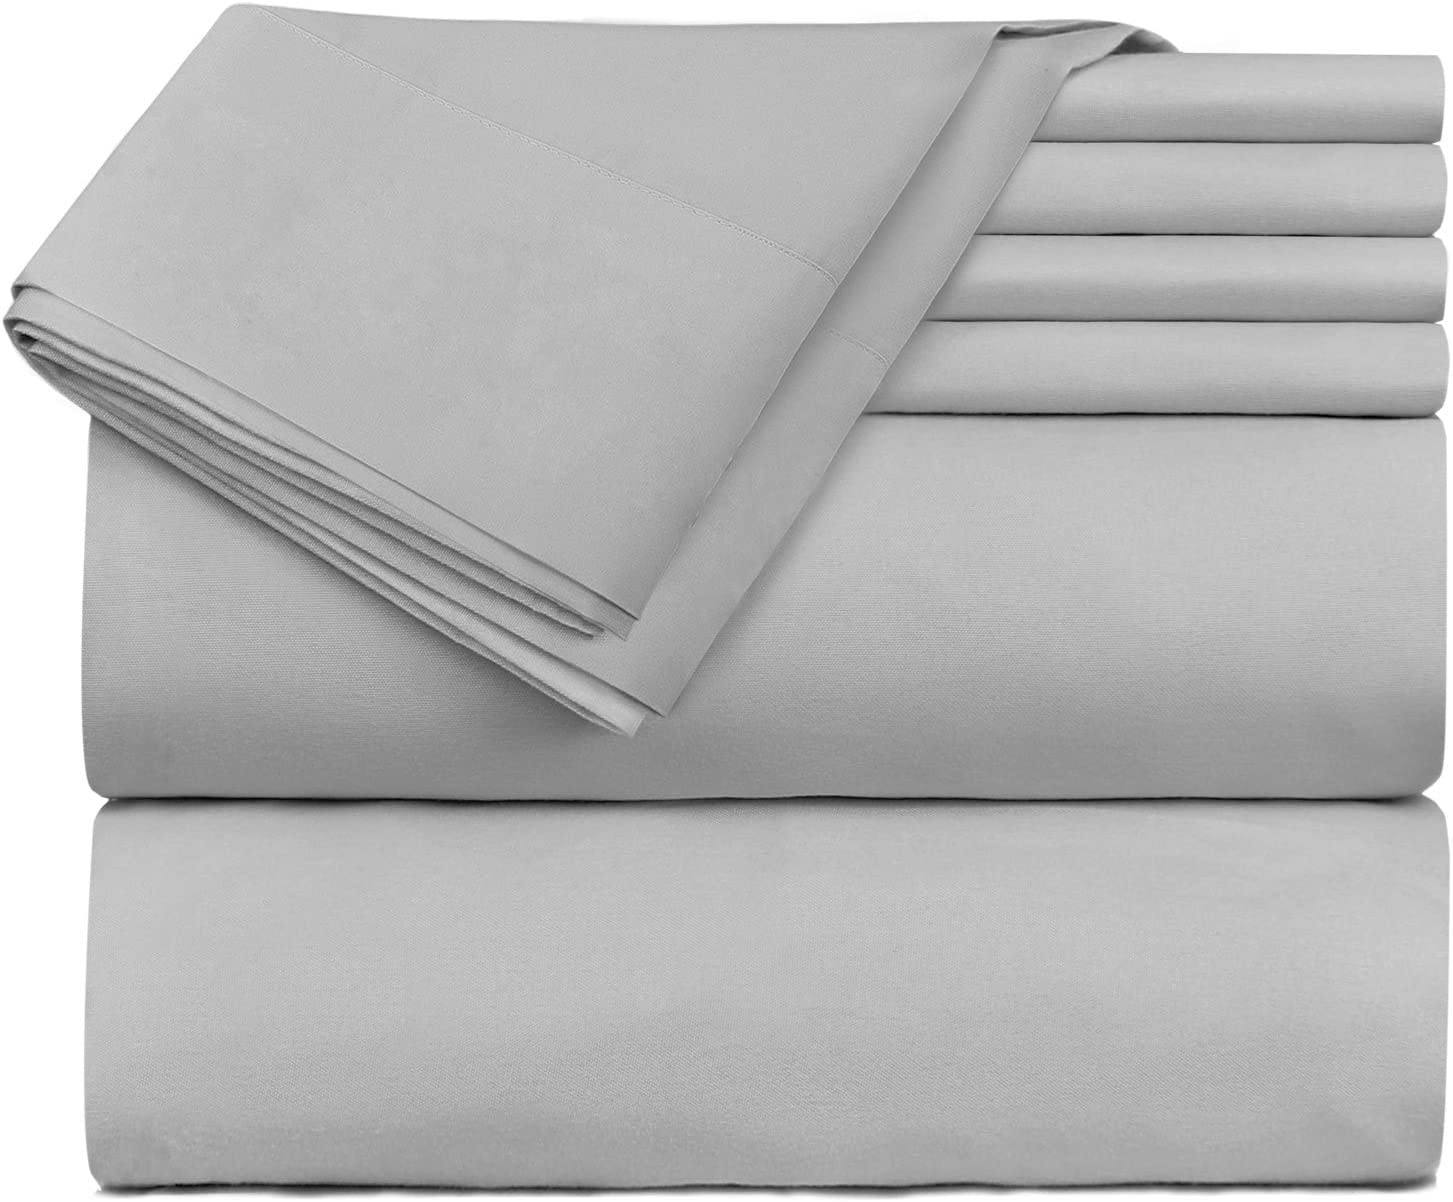 Hearth & Harbor 6 Piece Bed Sheet Set Extra Deep Pocket, Fits Mattress from 18-24 inces Depth, Queen, Silver